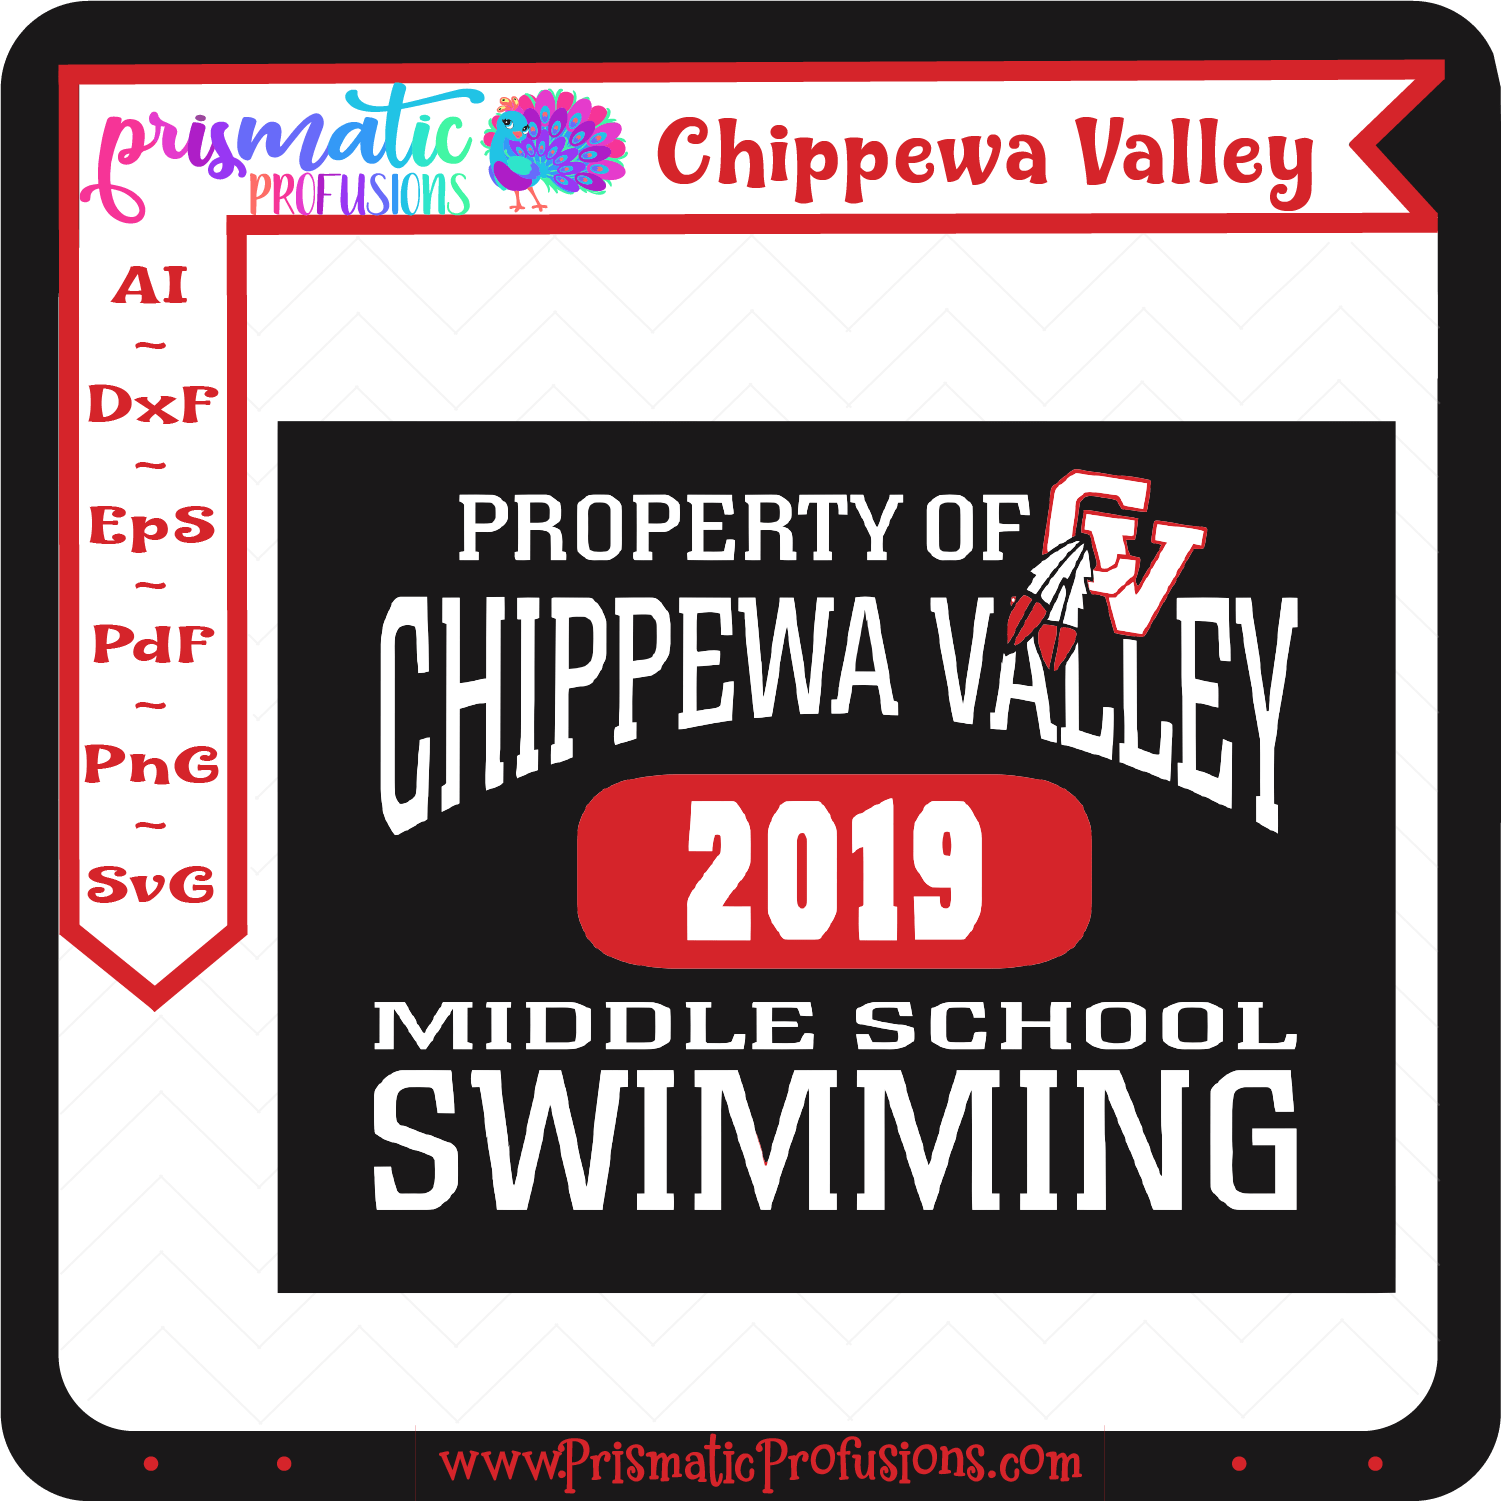 Chippewa valley clipart jpg black and white Chippewa Valley Swimming SVG, Chippewa Valley Swimming Clipart jpg black and white